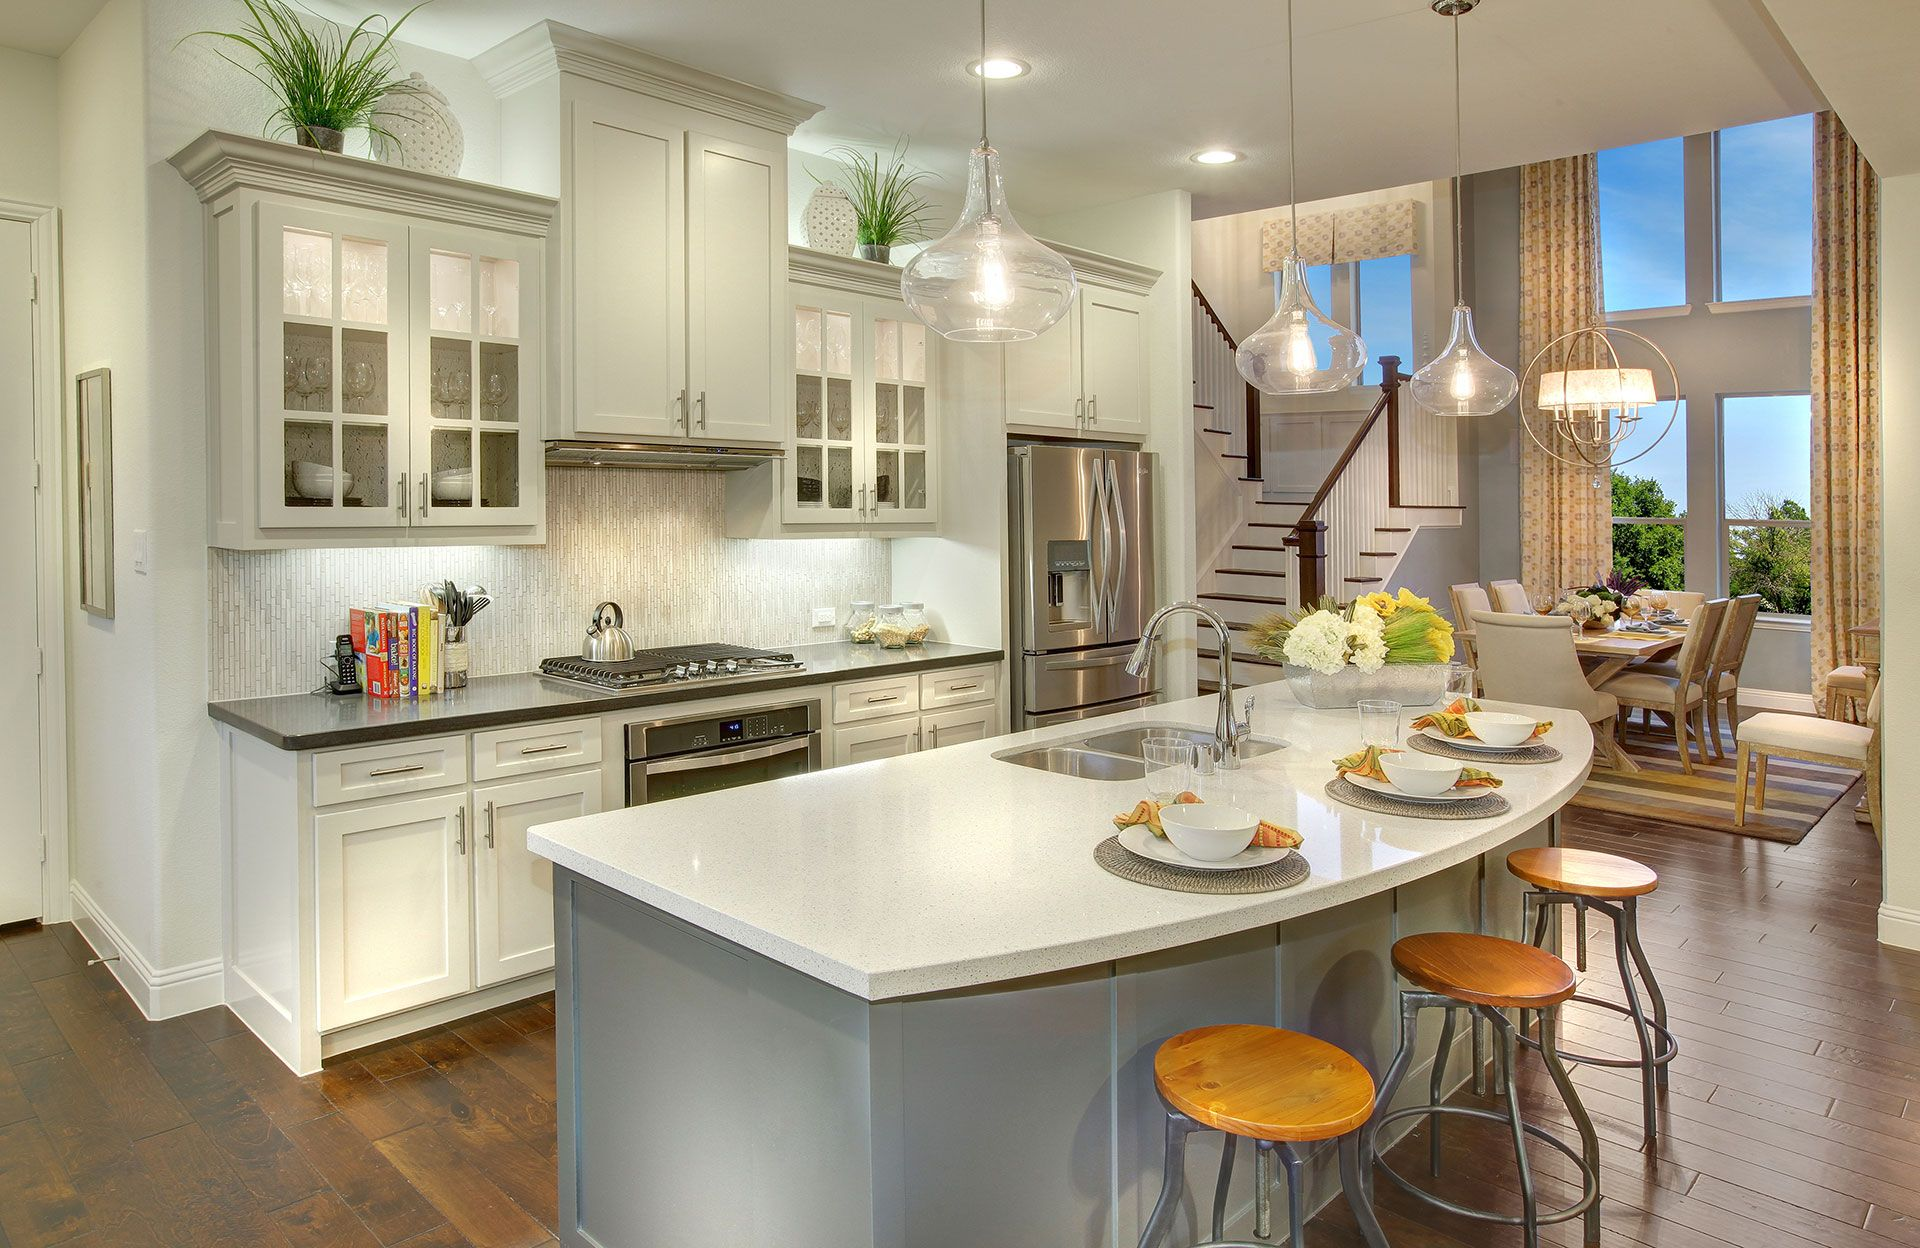 Kitchen featured in the Tiana By Drees Custom Homes in Dallas, TX